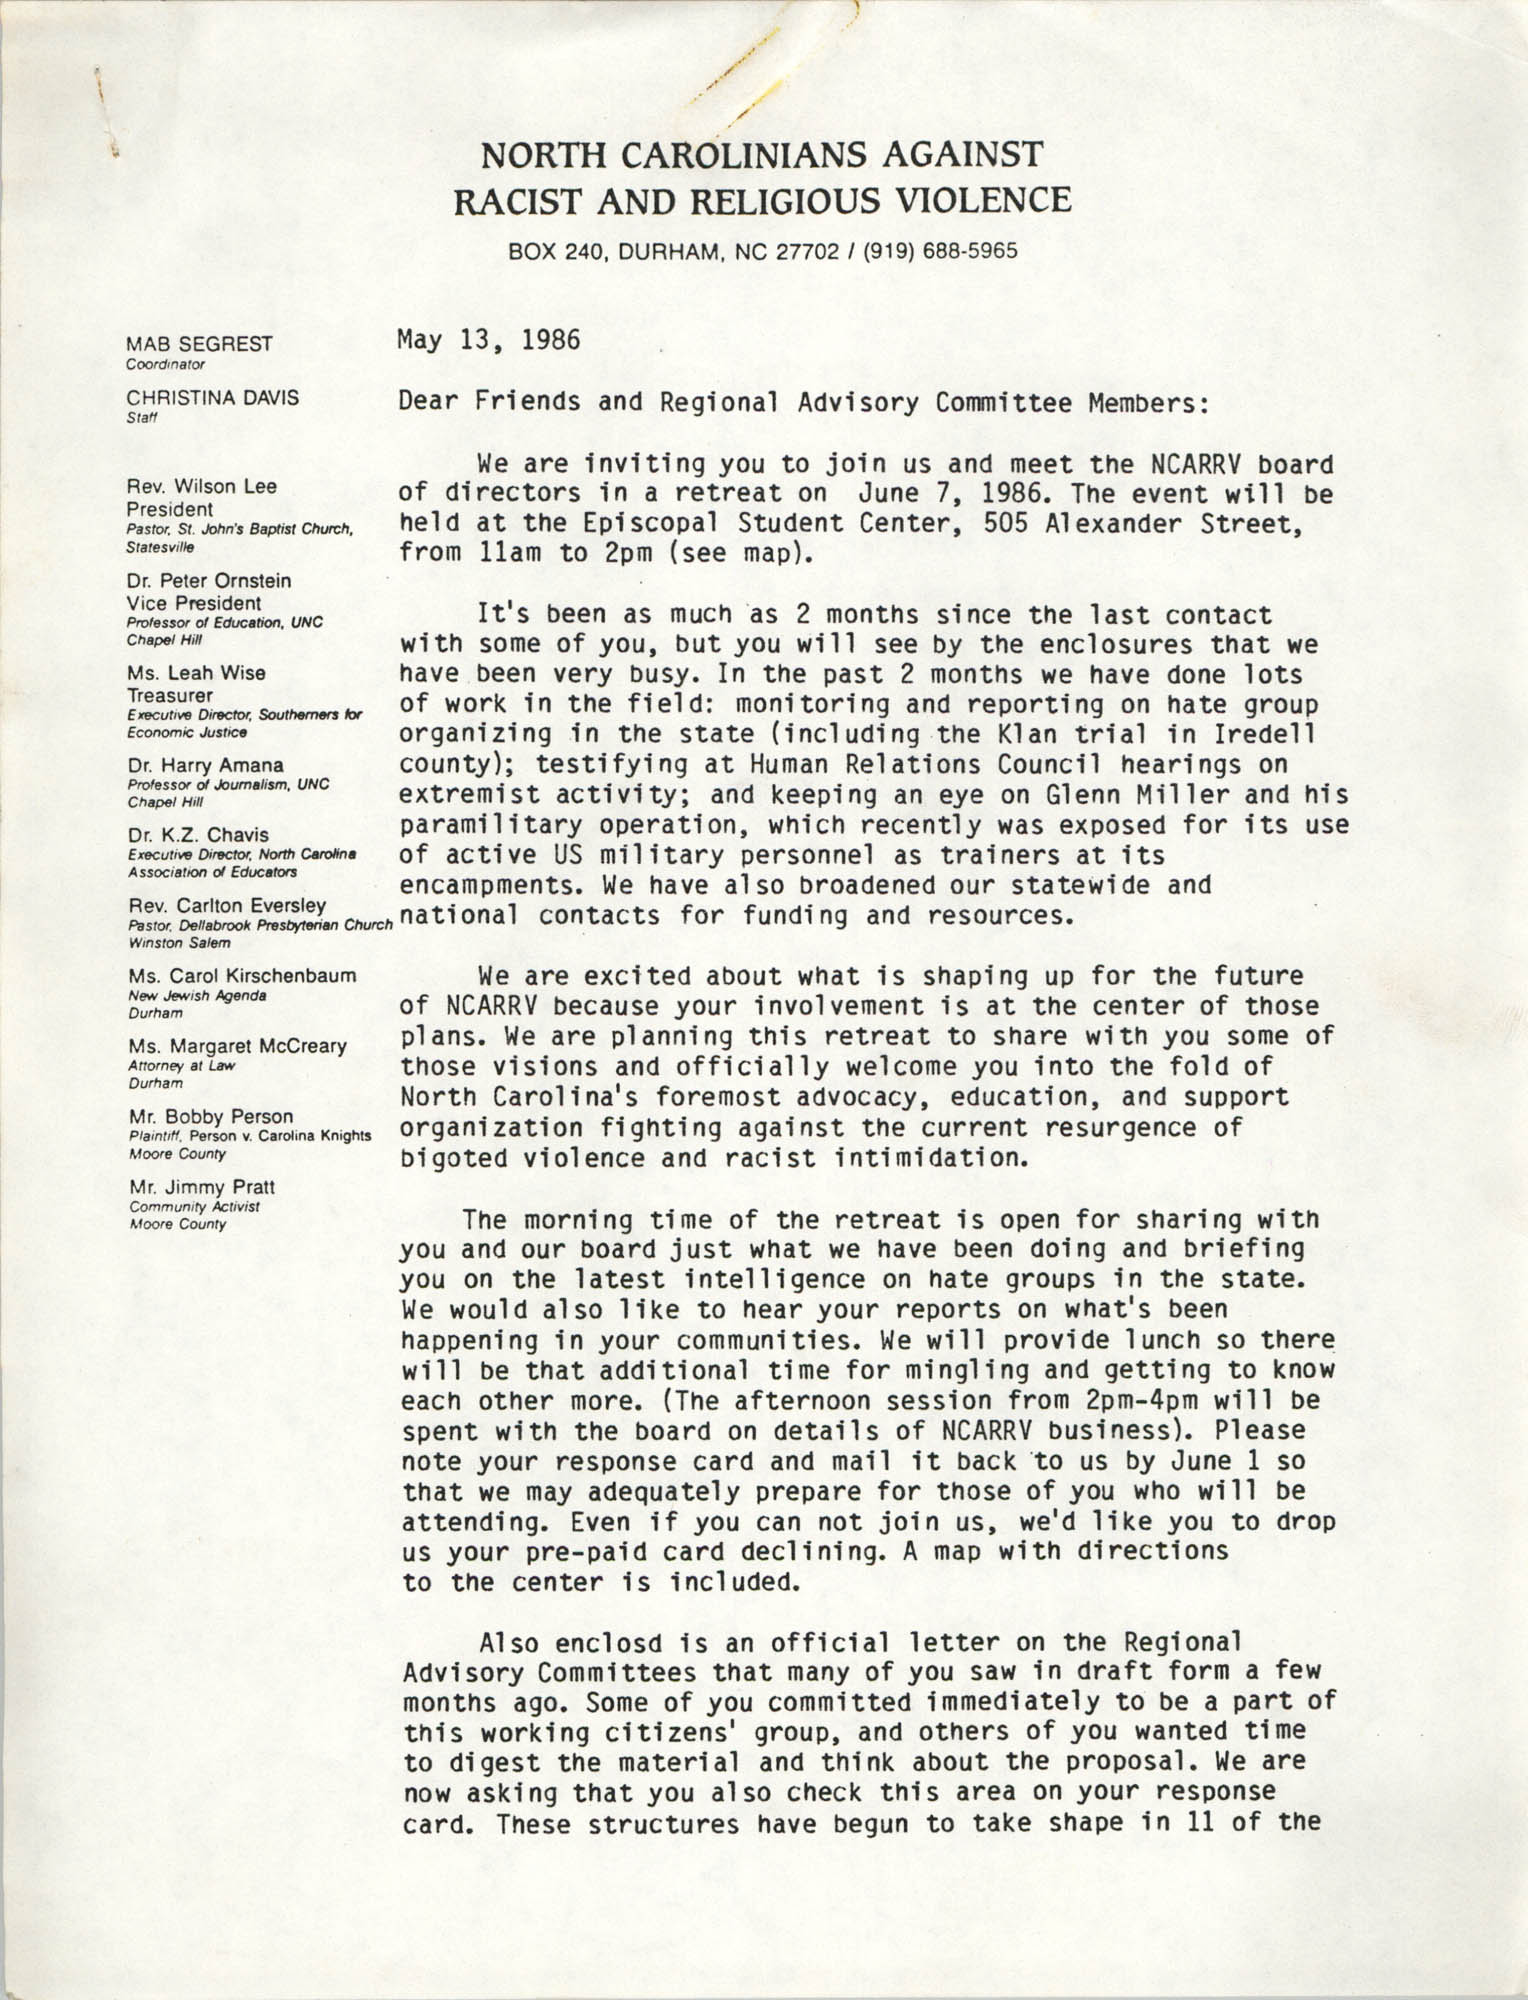 Letter from Mab Segrest and Chris Davis, May 13, 1986